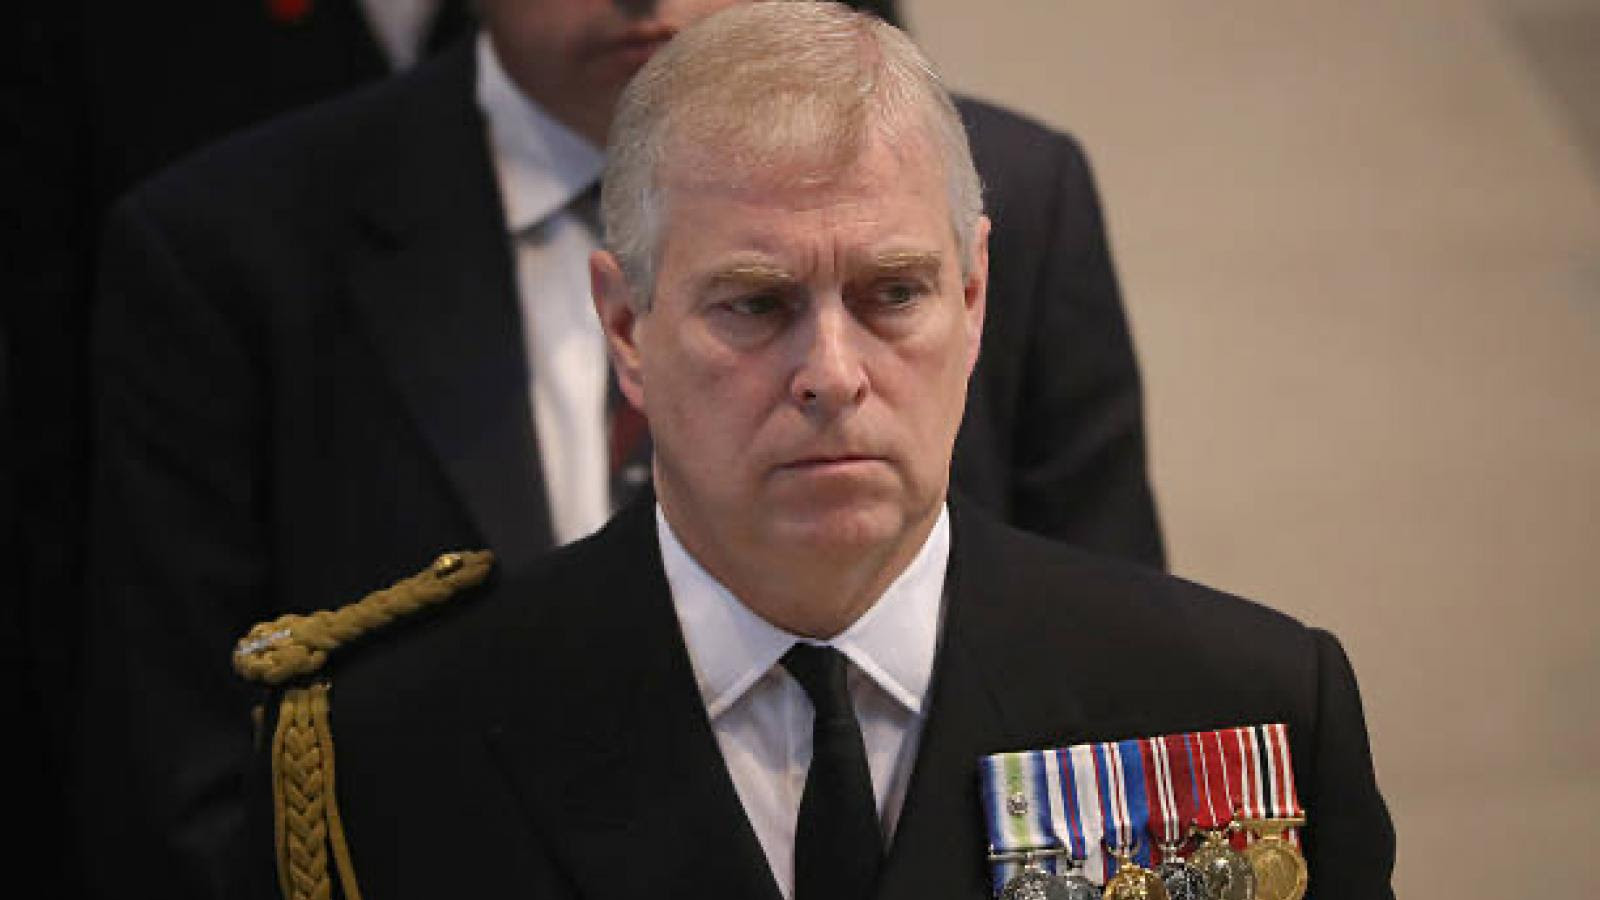 Scotland yard closes sex abuse probe against Prince Andrew without charges Andrew still faces a lawsuit filed by Virginia Giuffre 41E43035-228E-4A92-BE0C-913CA6510E0C